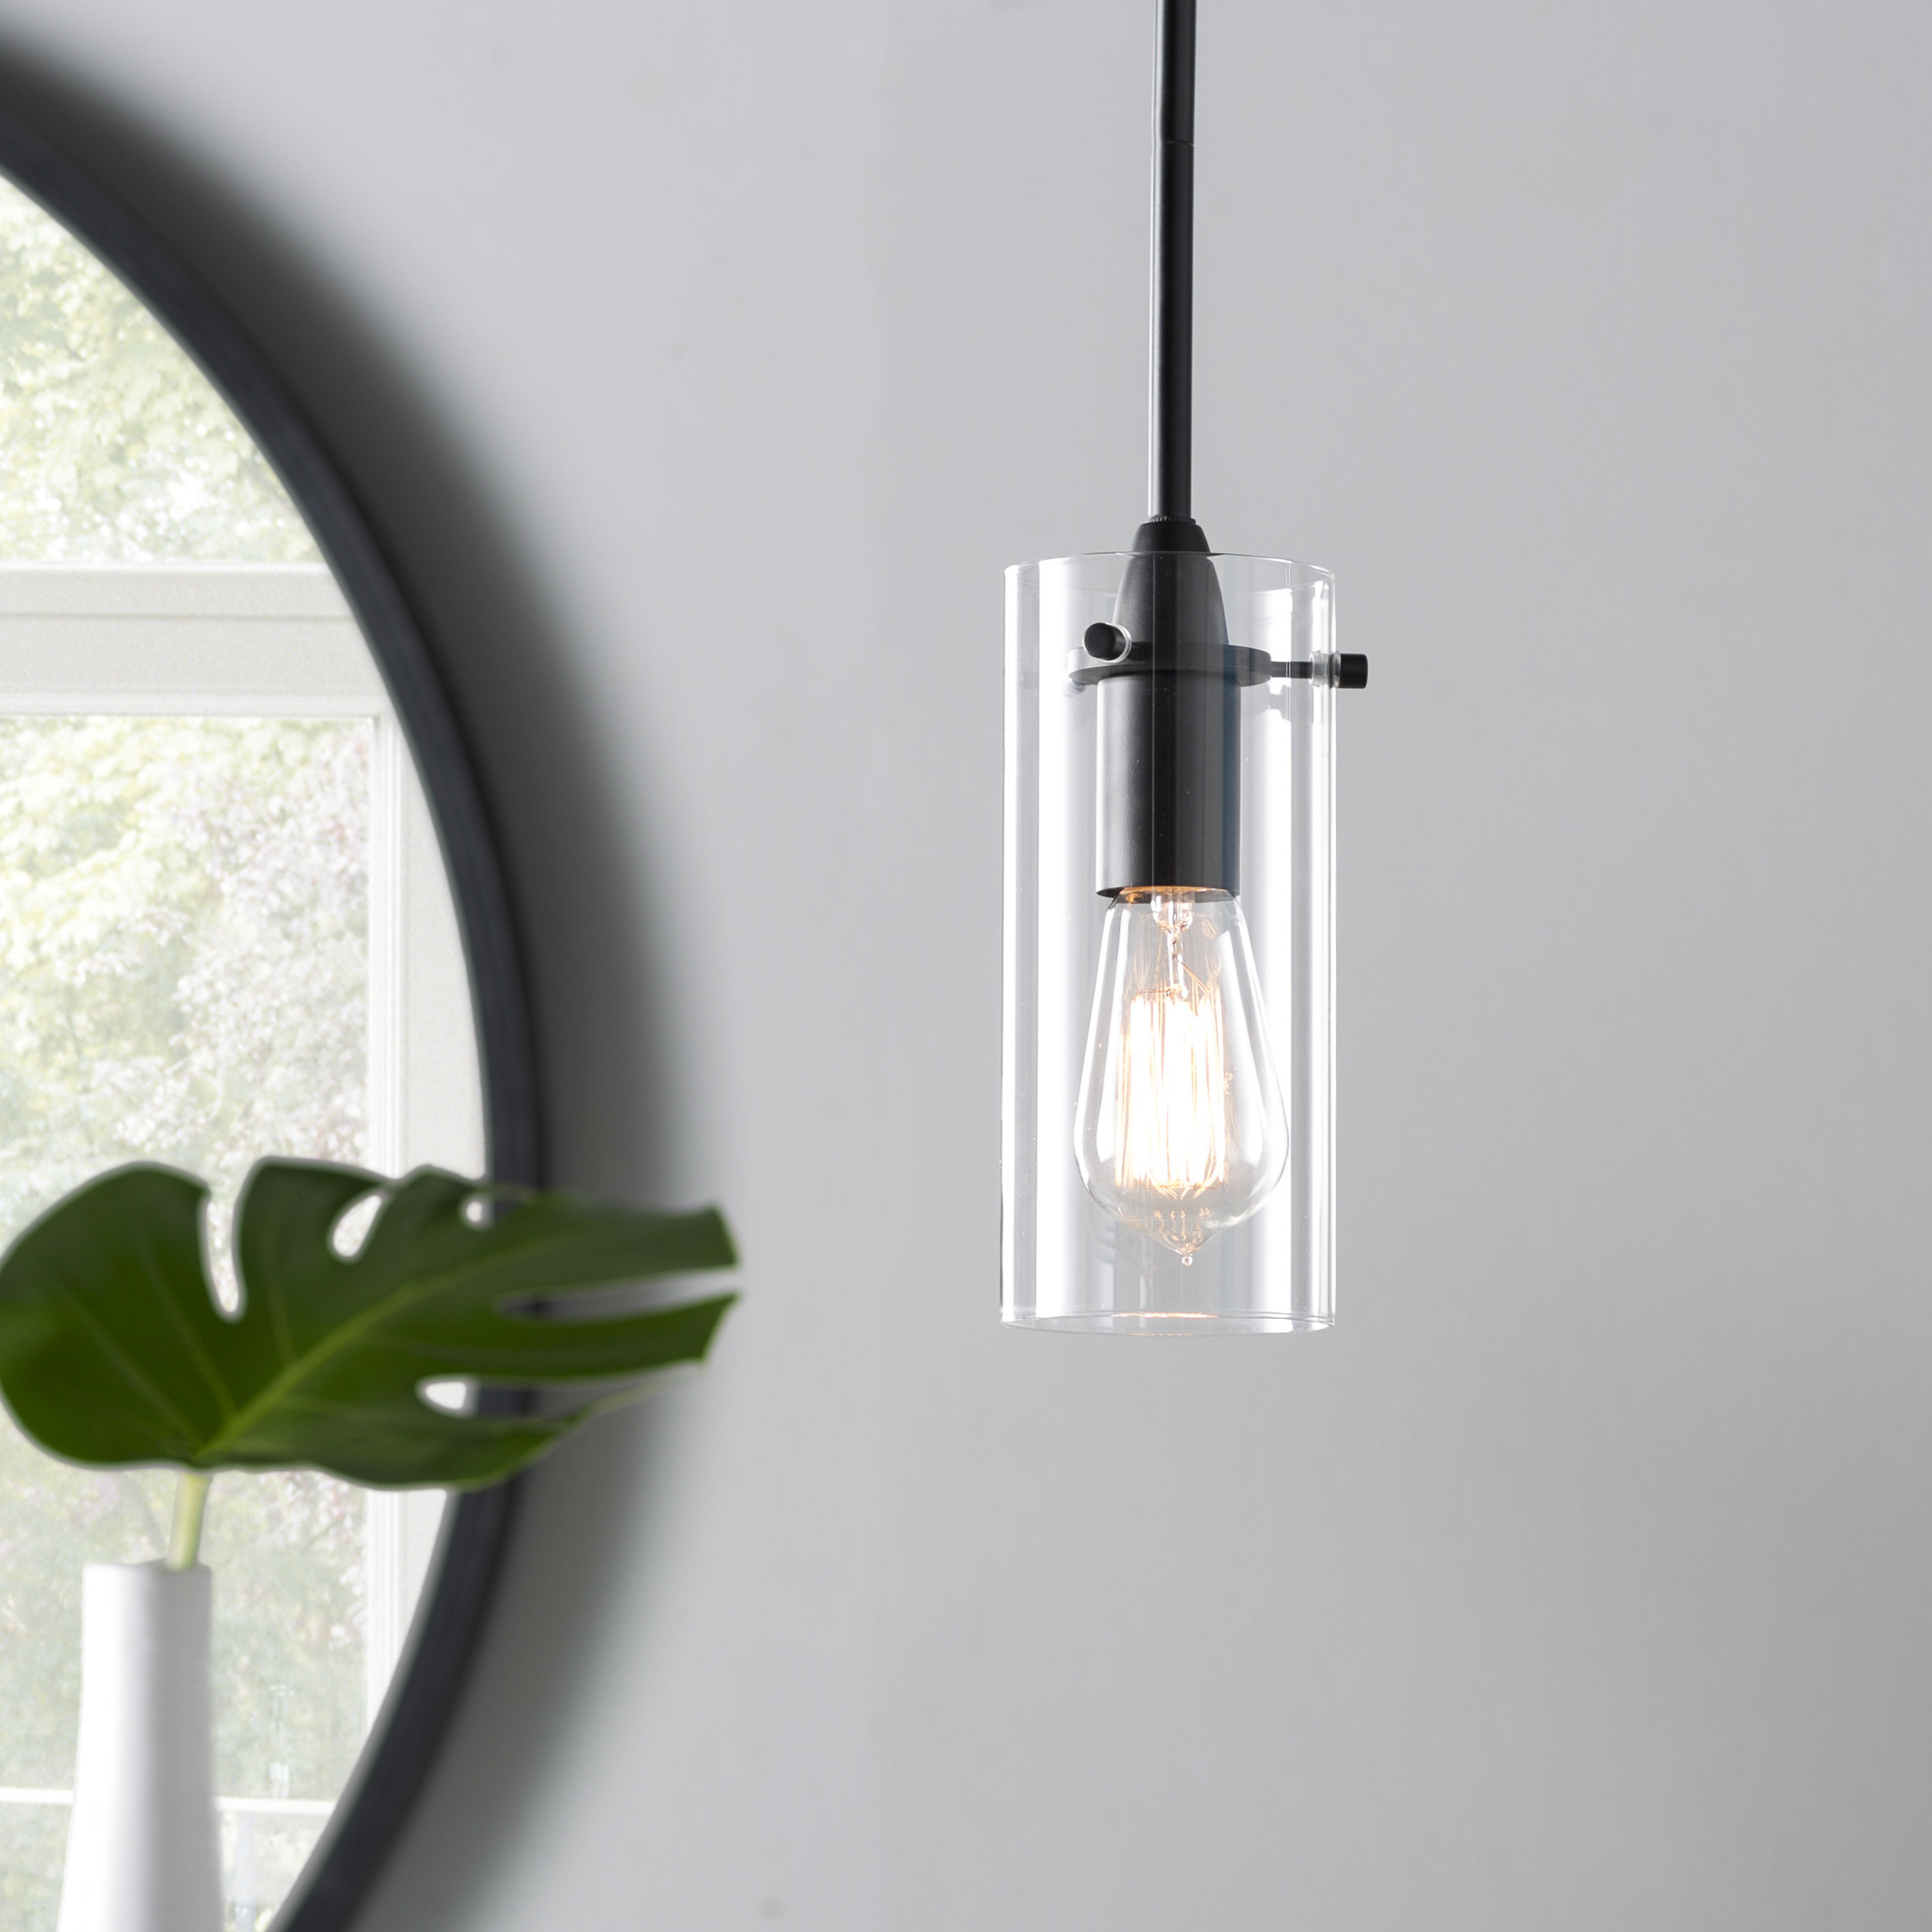 Widely Used Angelina 1 Light Single Cylinder Pendants Intended For Ivy Bronx Angelina 1 Light Single Cylinder Pendant & Reviews (View 25 of 25)